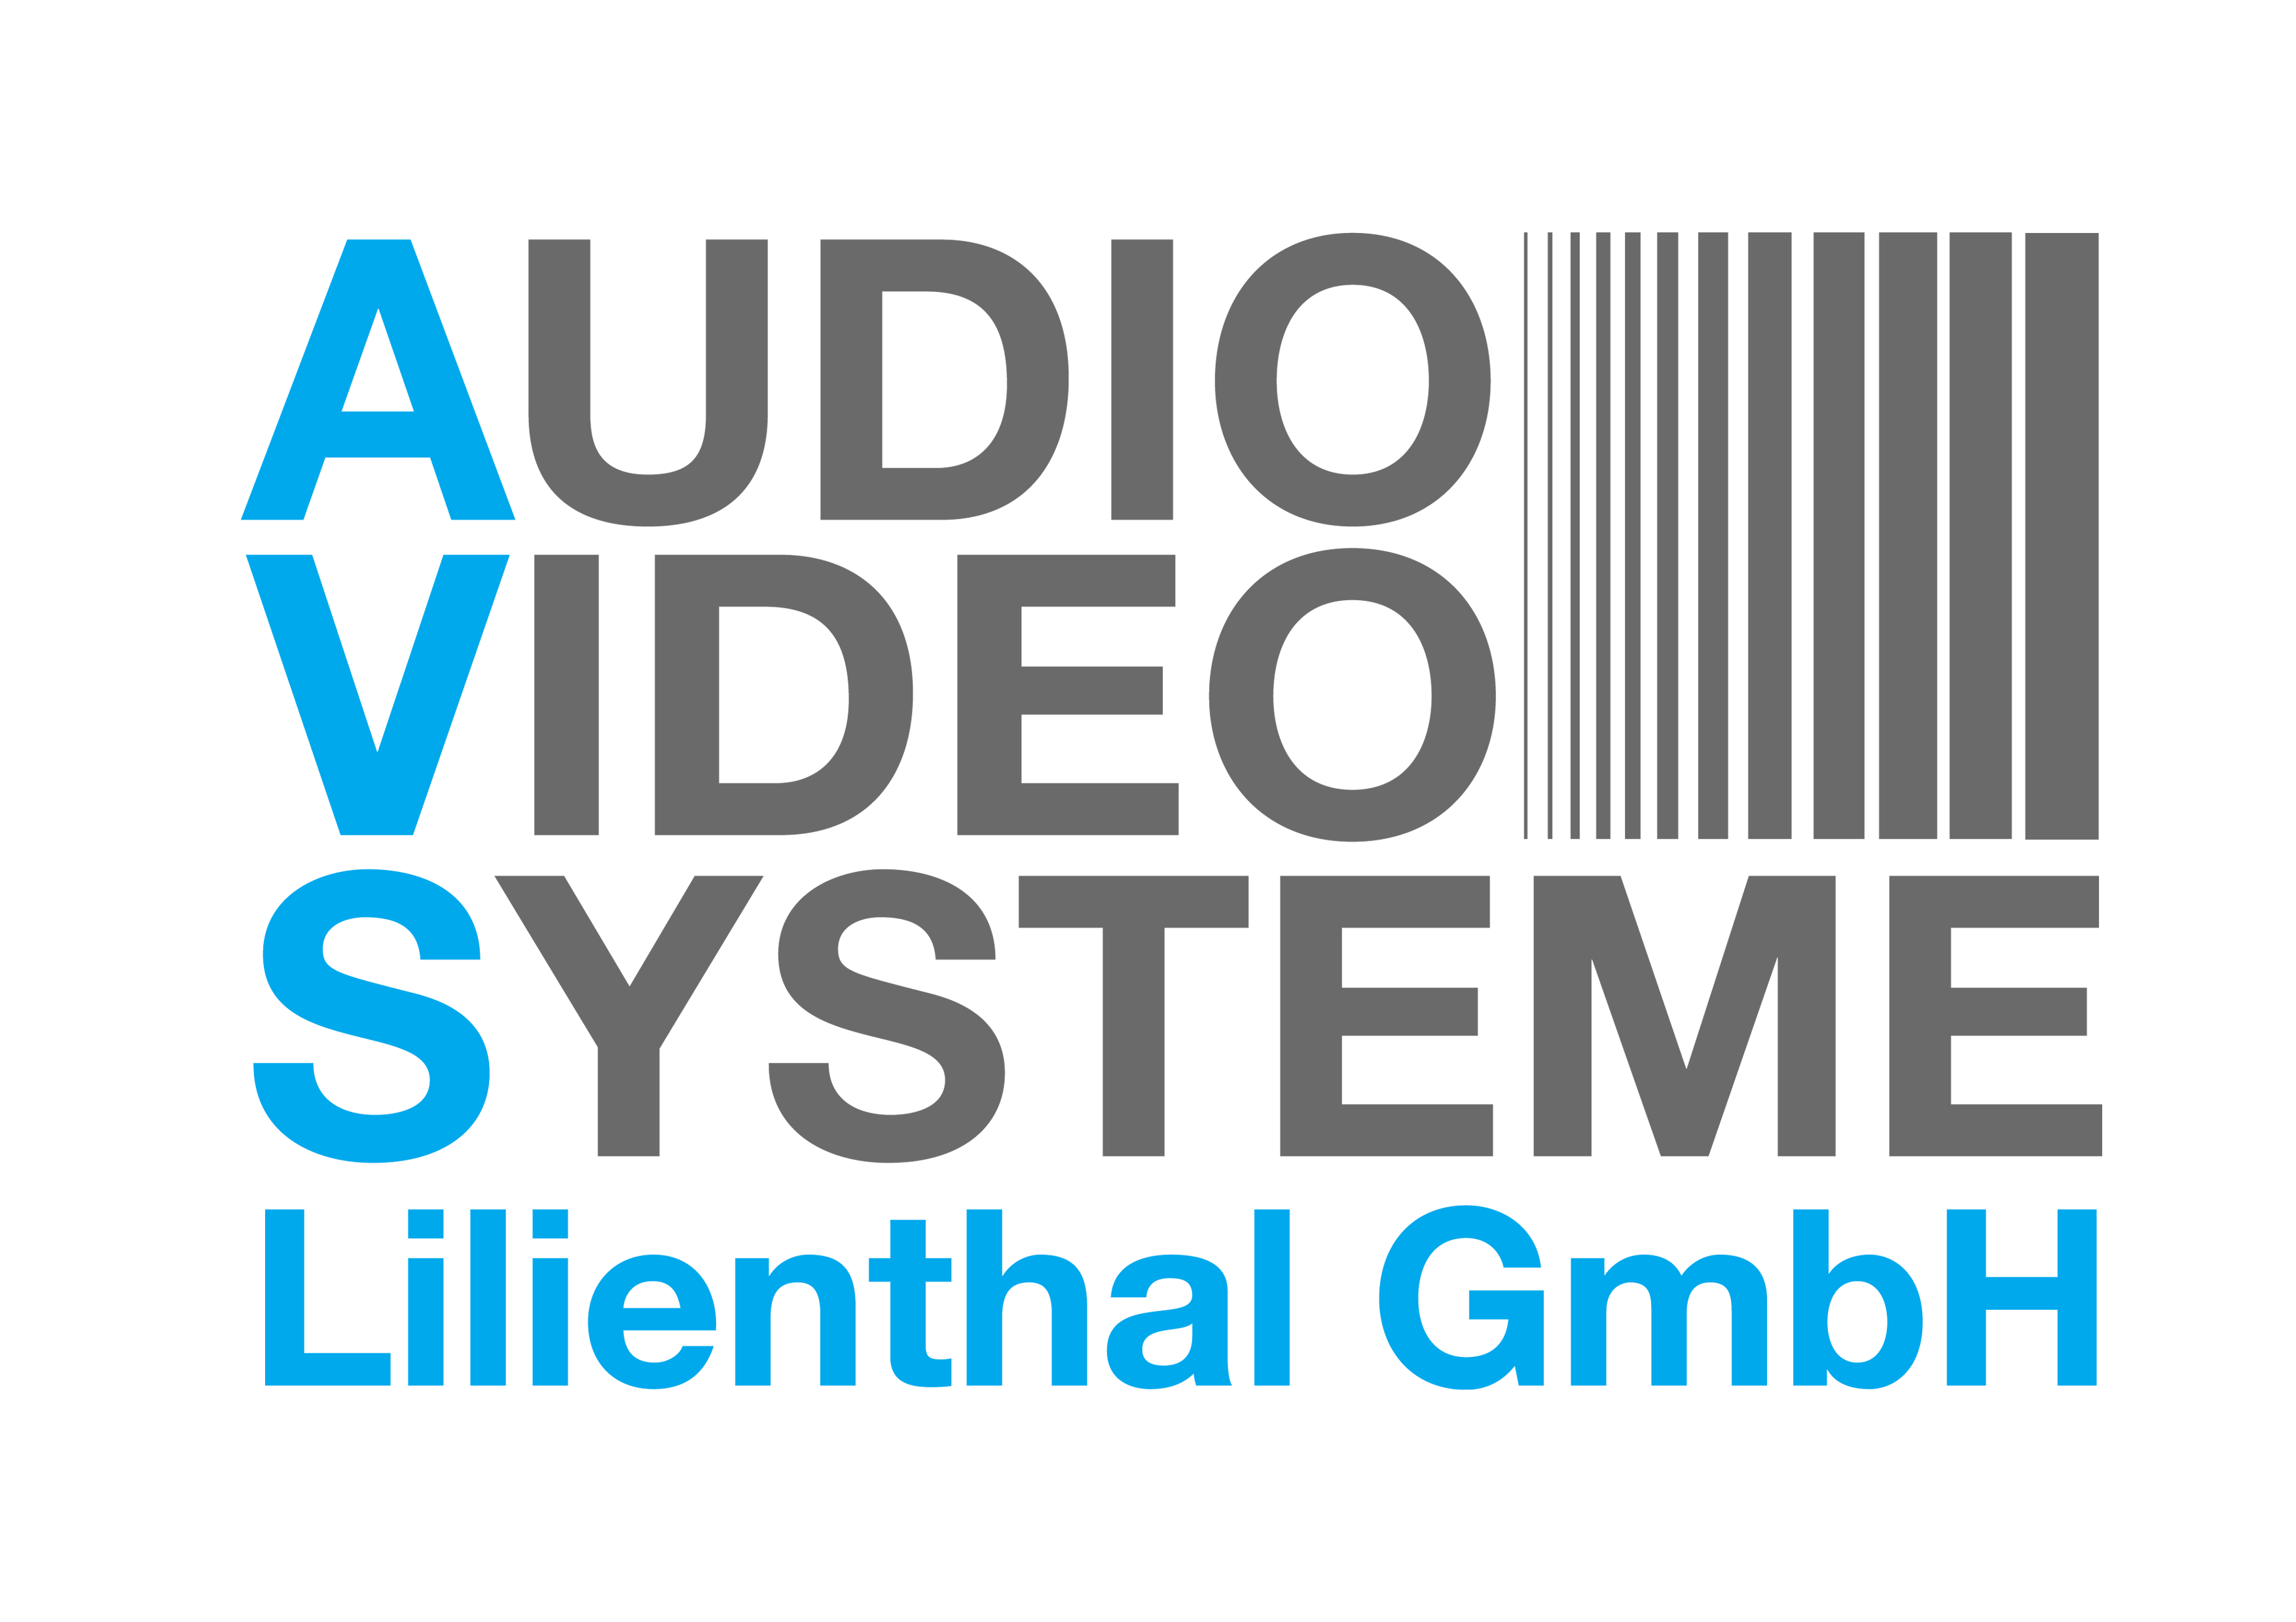 Audio Video Systeme Lilienthal GmbH